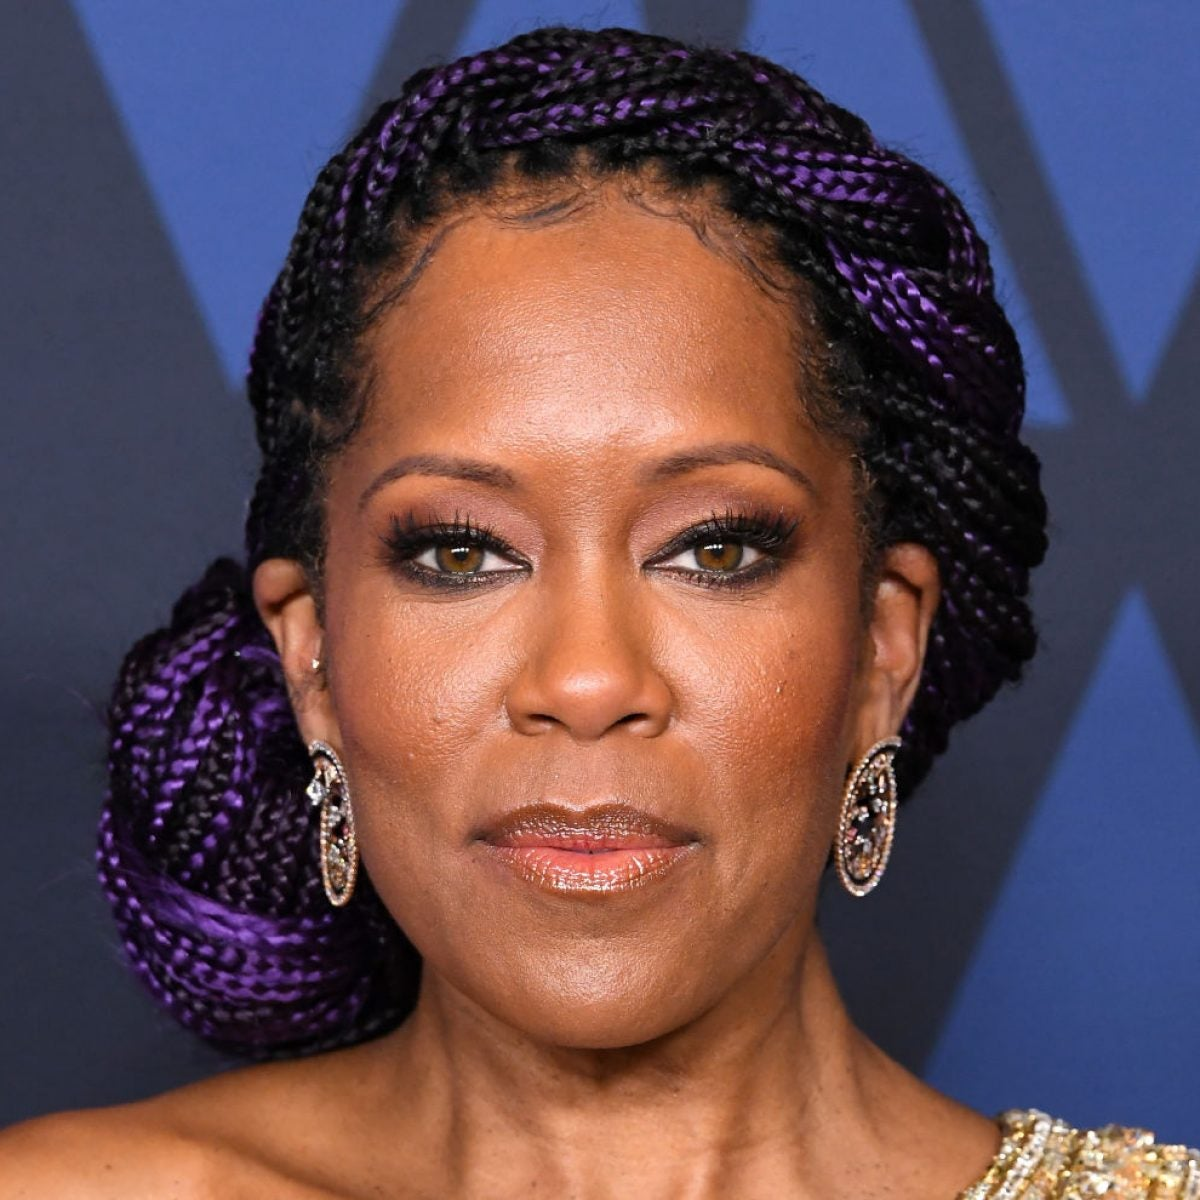 Regina King, Viola Davis, D-Nice Up For Entertainer Of The Year At This Year's NAACP Image Awards